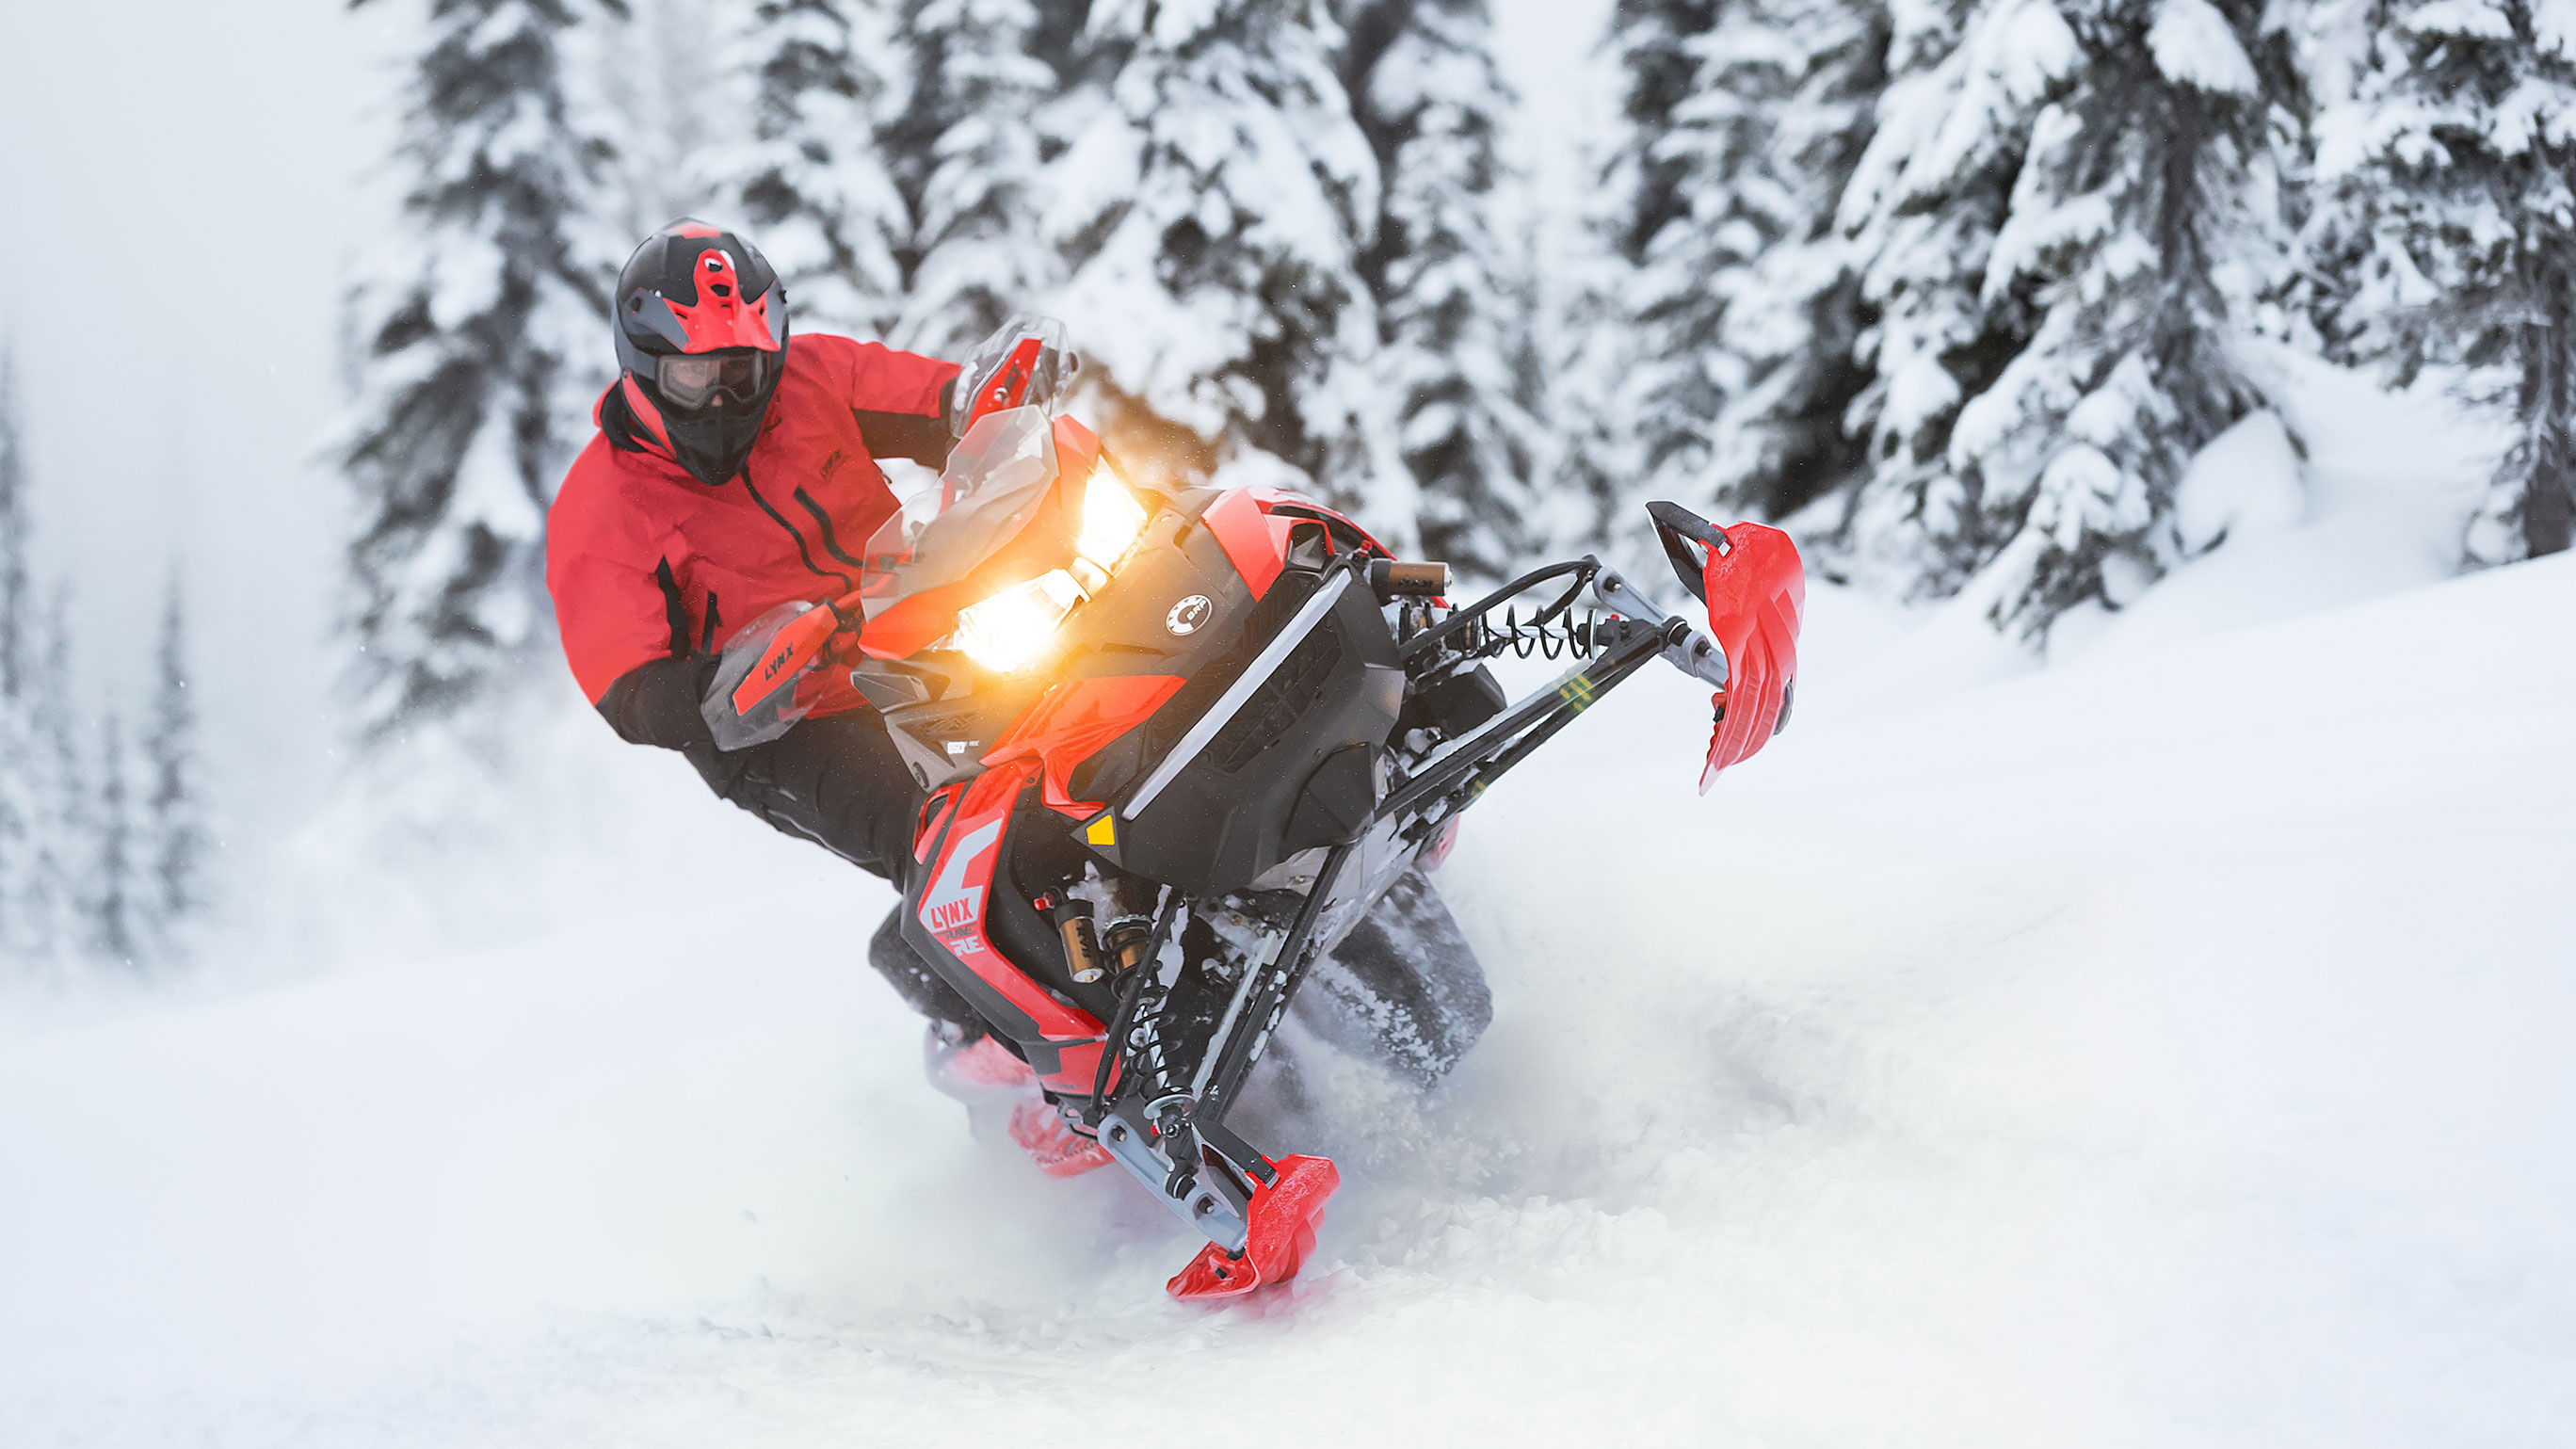 Lynx Rave snowmobiles sporty riding on bumpy trail